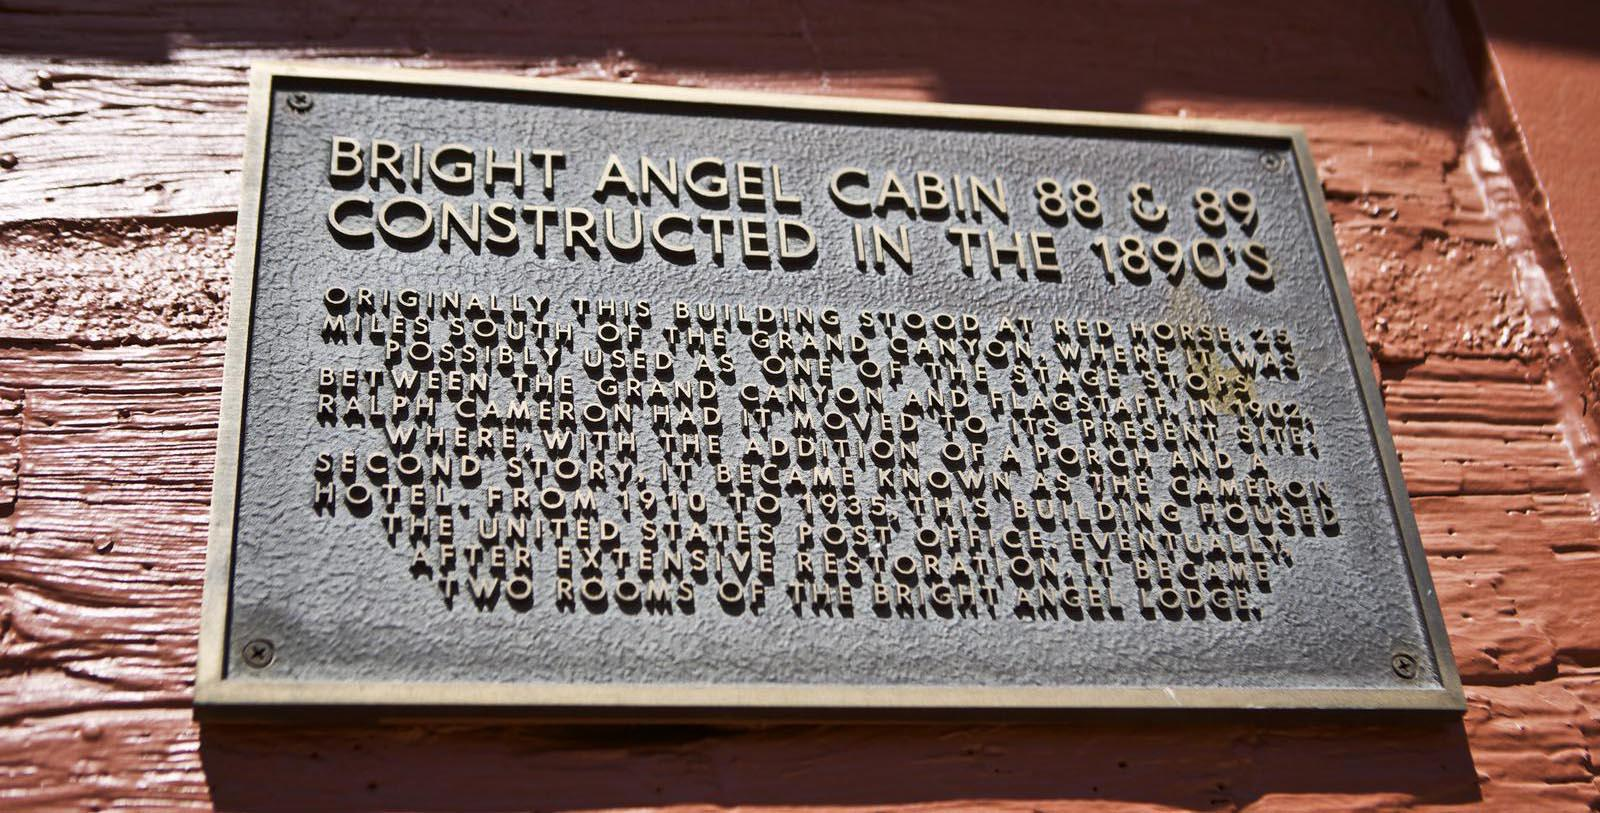 Image of historic plaque on the exterior wall at Bright Angel Lodge & Cabins, 1909, Member of Historic Hotels of America, in Grand Canyon, Arizona, Discover